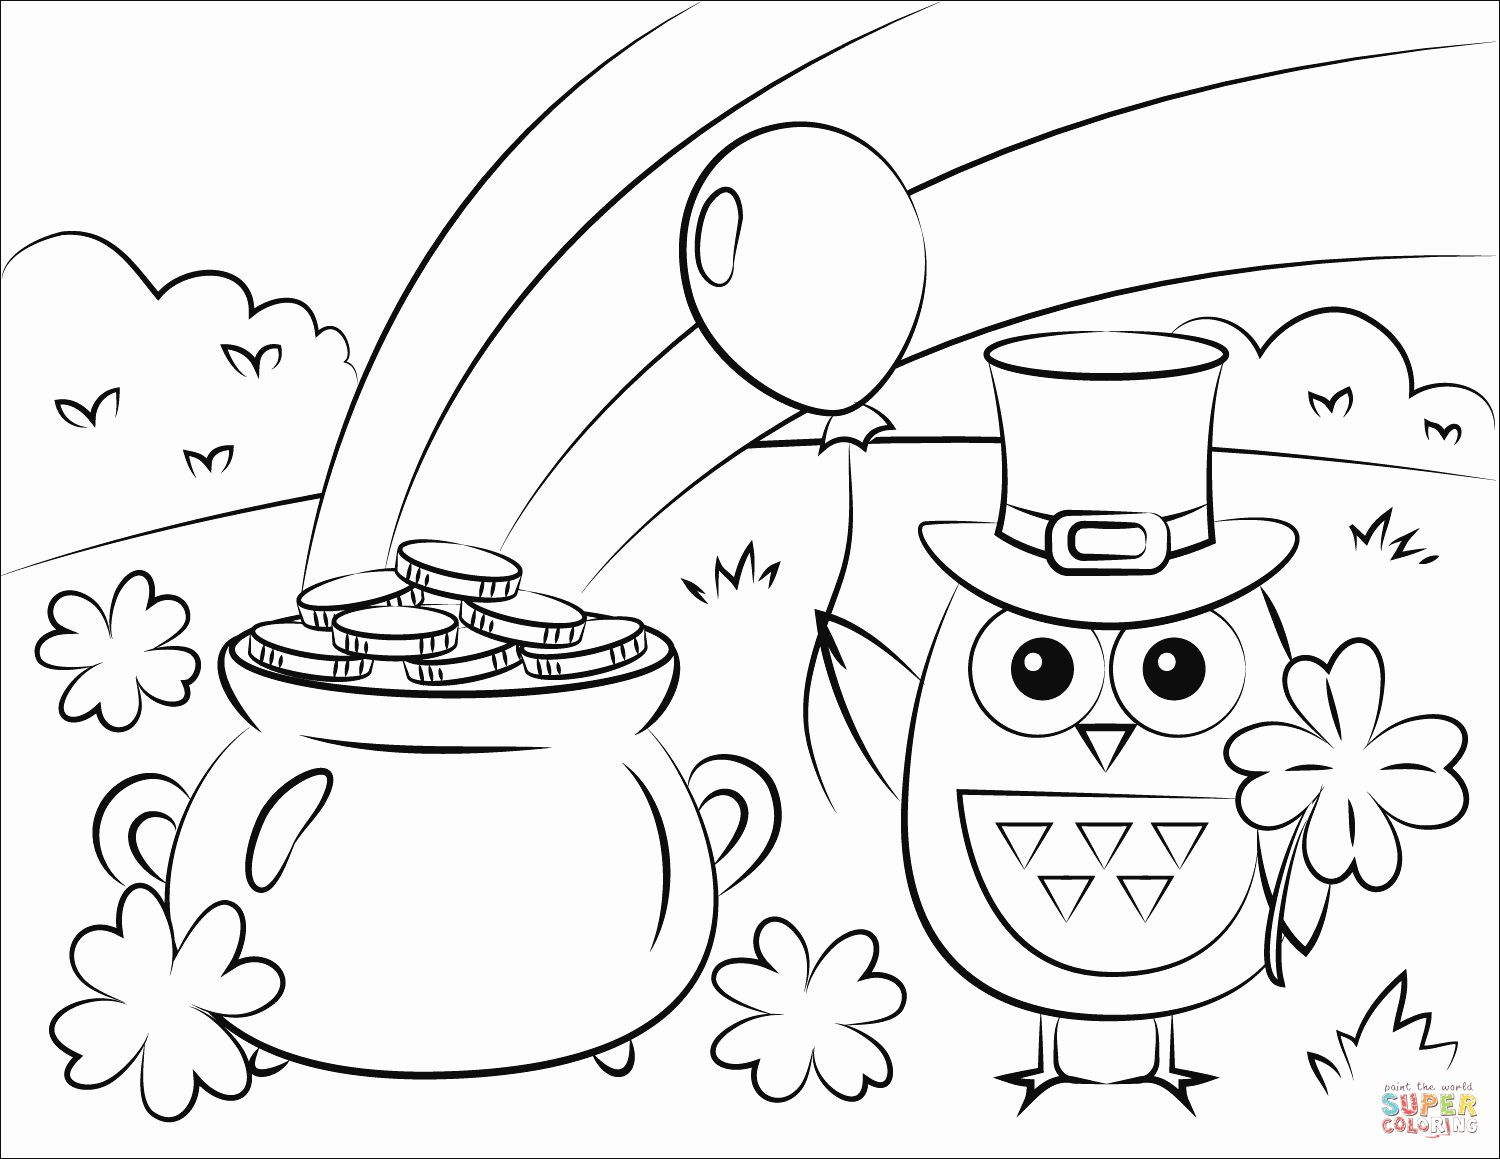 32 St Patricks Day Coloring Page in 2020 (With images